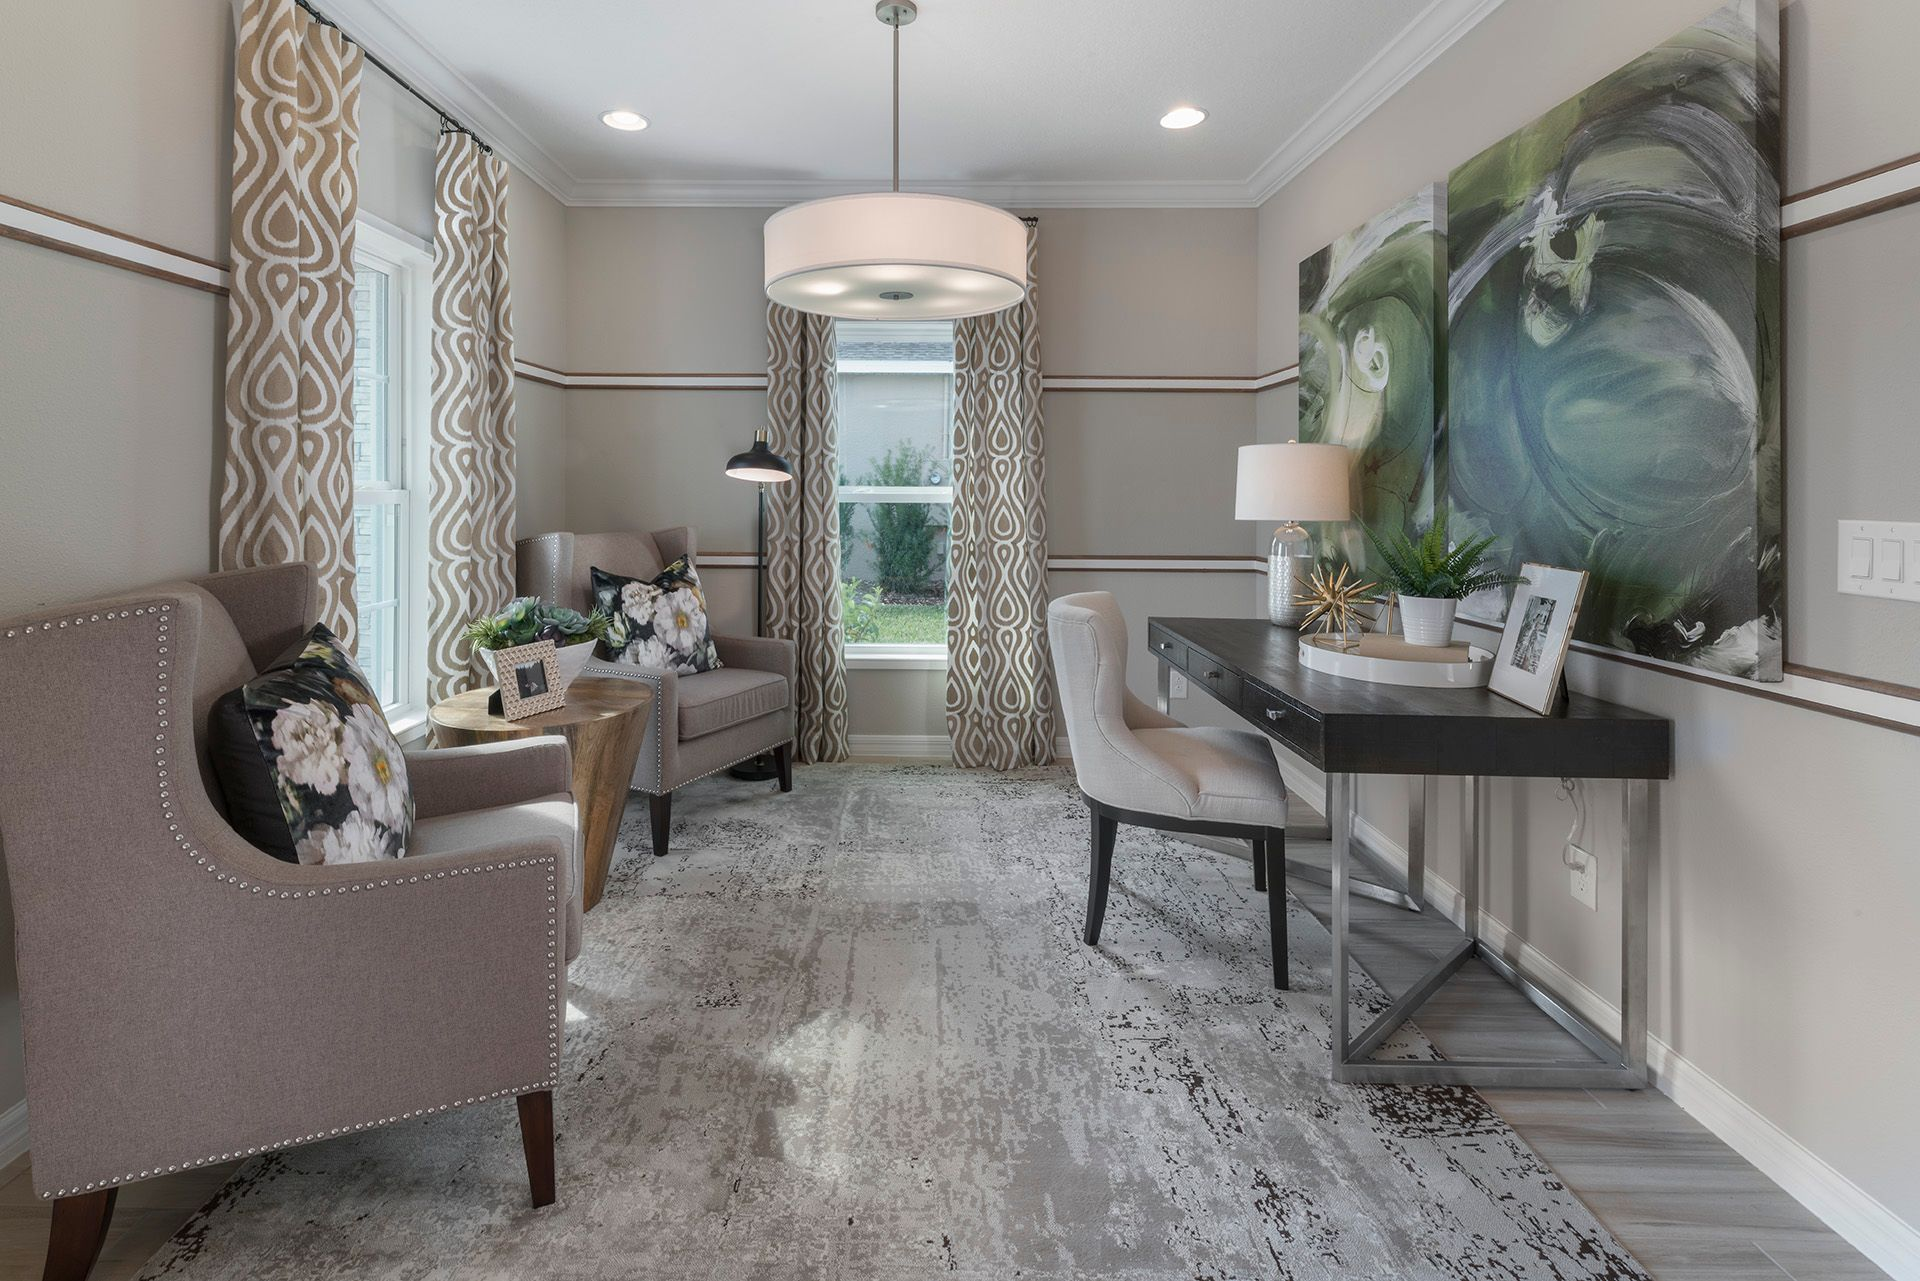 Living Area featured in the Greenwich Bonus By Hanover Family Builders in Lakeland-Winter Haven, FL